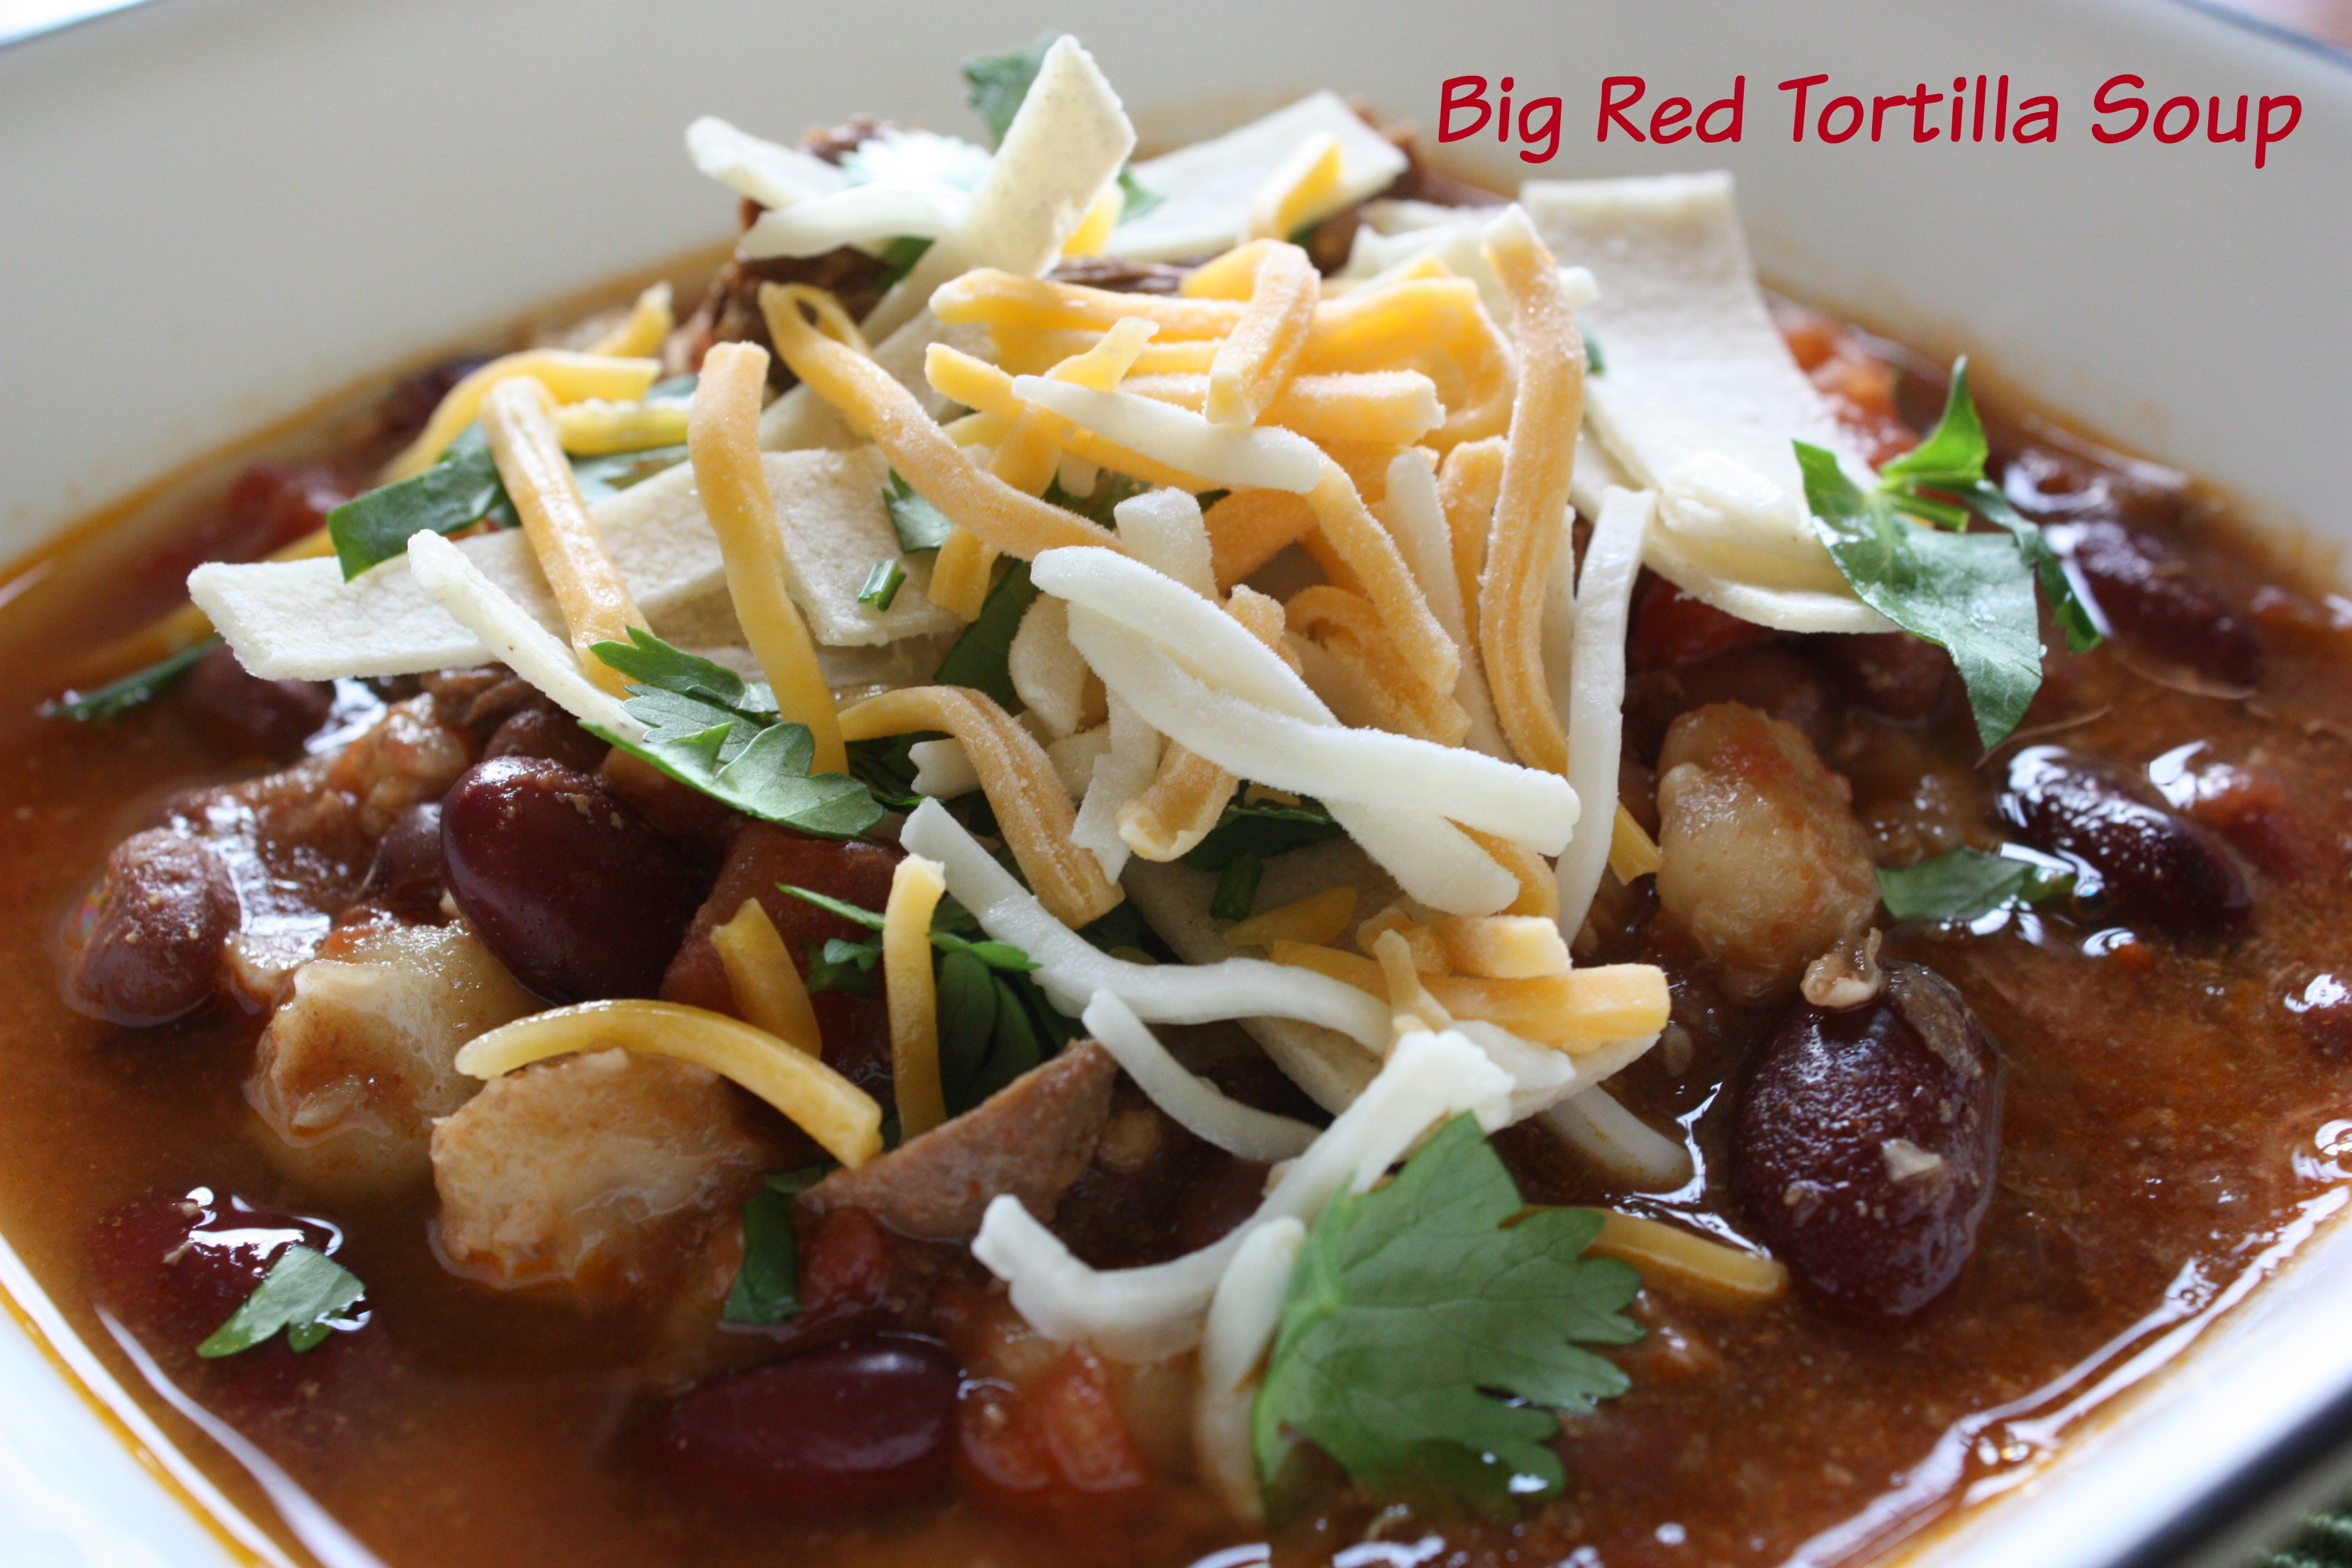 Big Red Tortilla Soup www.herviewfromhome.com